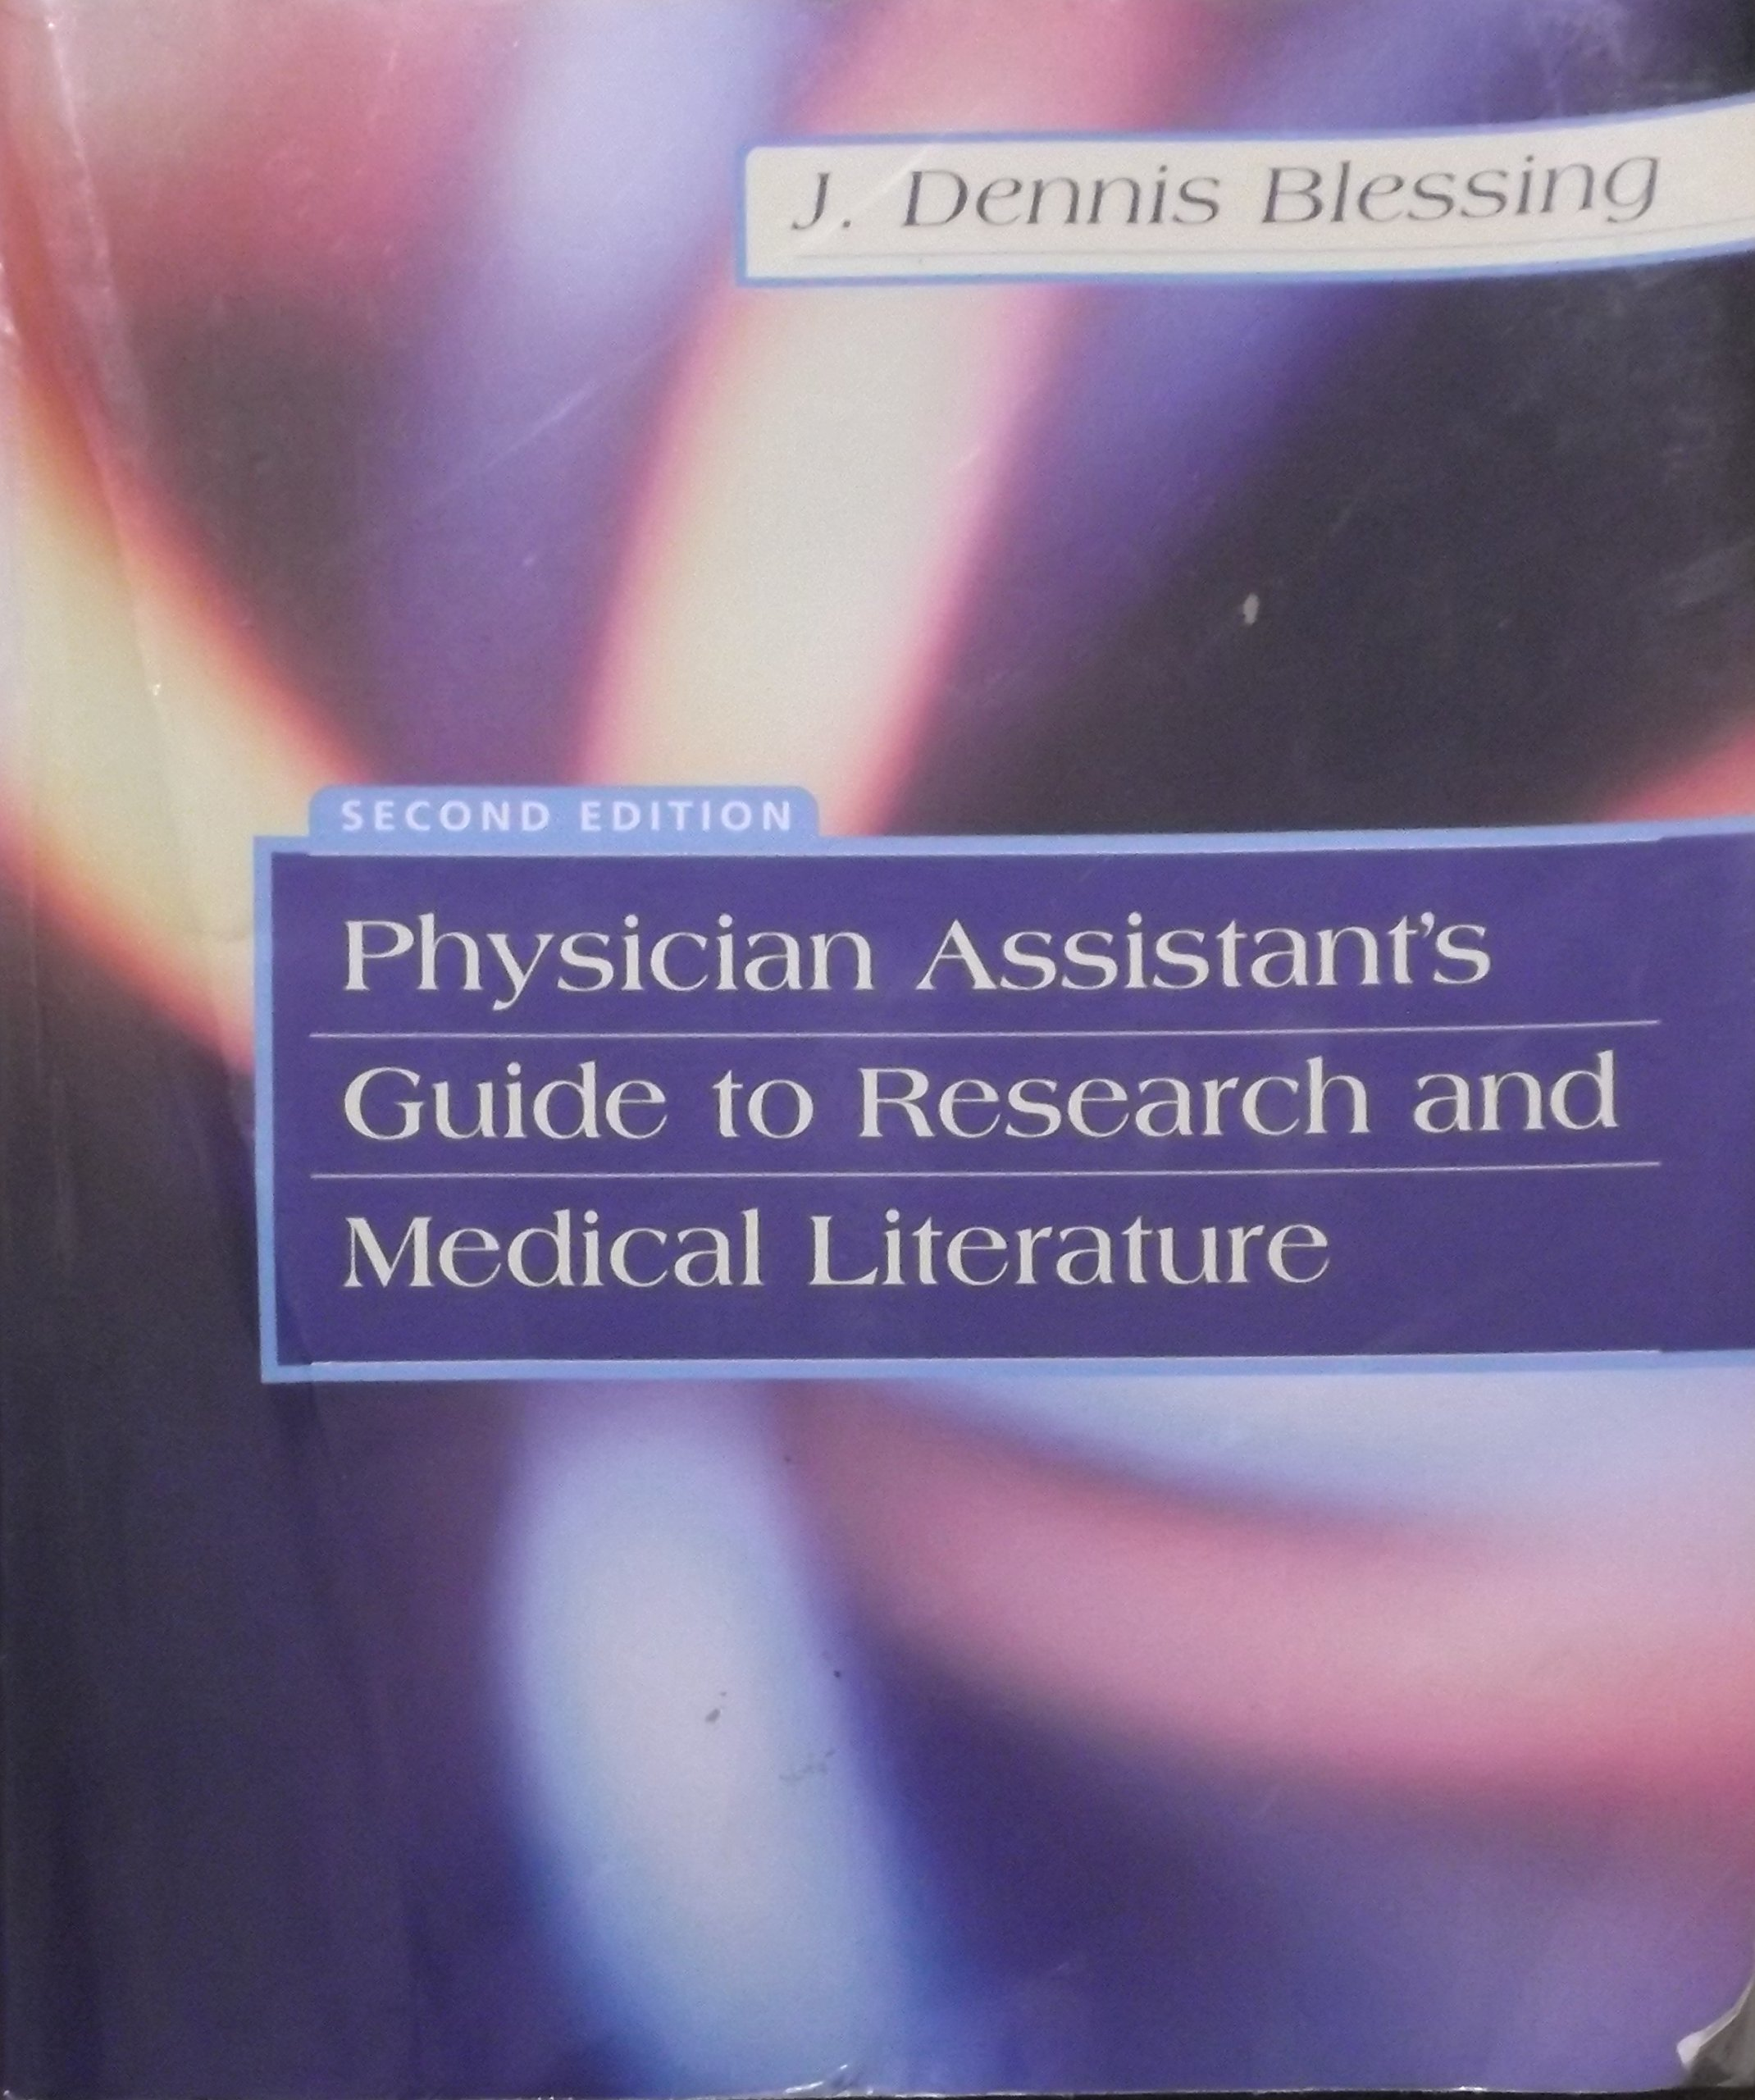 Physician Assistants Guide to Research And Medical Literature - 2nd Edition